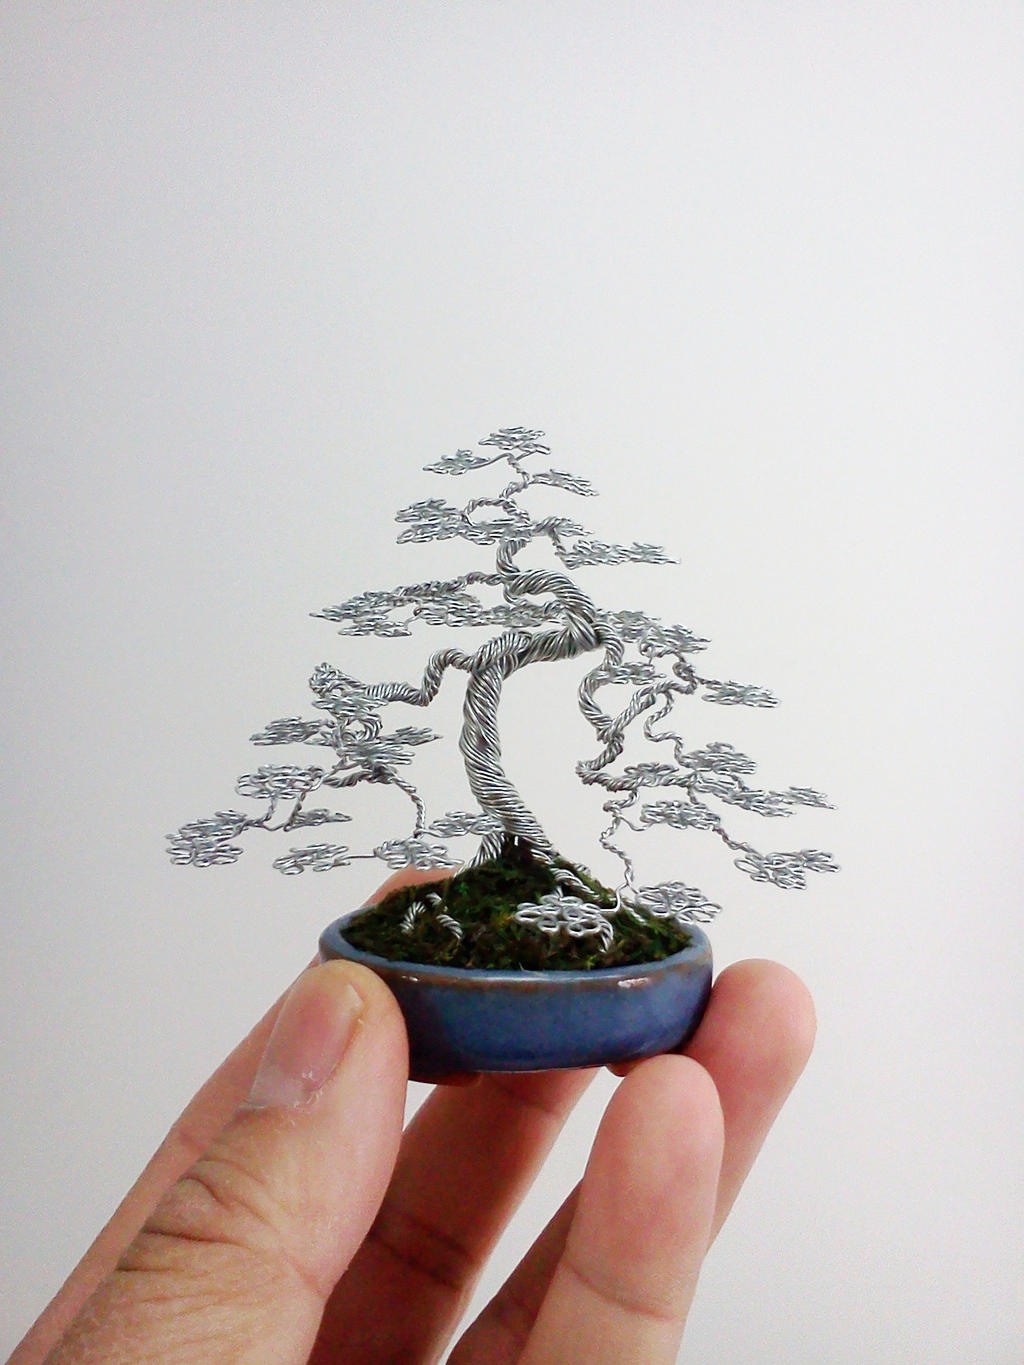 wire bonsai tree sculpture by ken to by kentoart on deviantart rh kentoart deviantart com Bonsai Wire Sizes Bonsai Styles